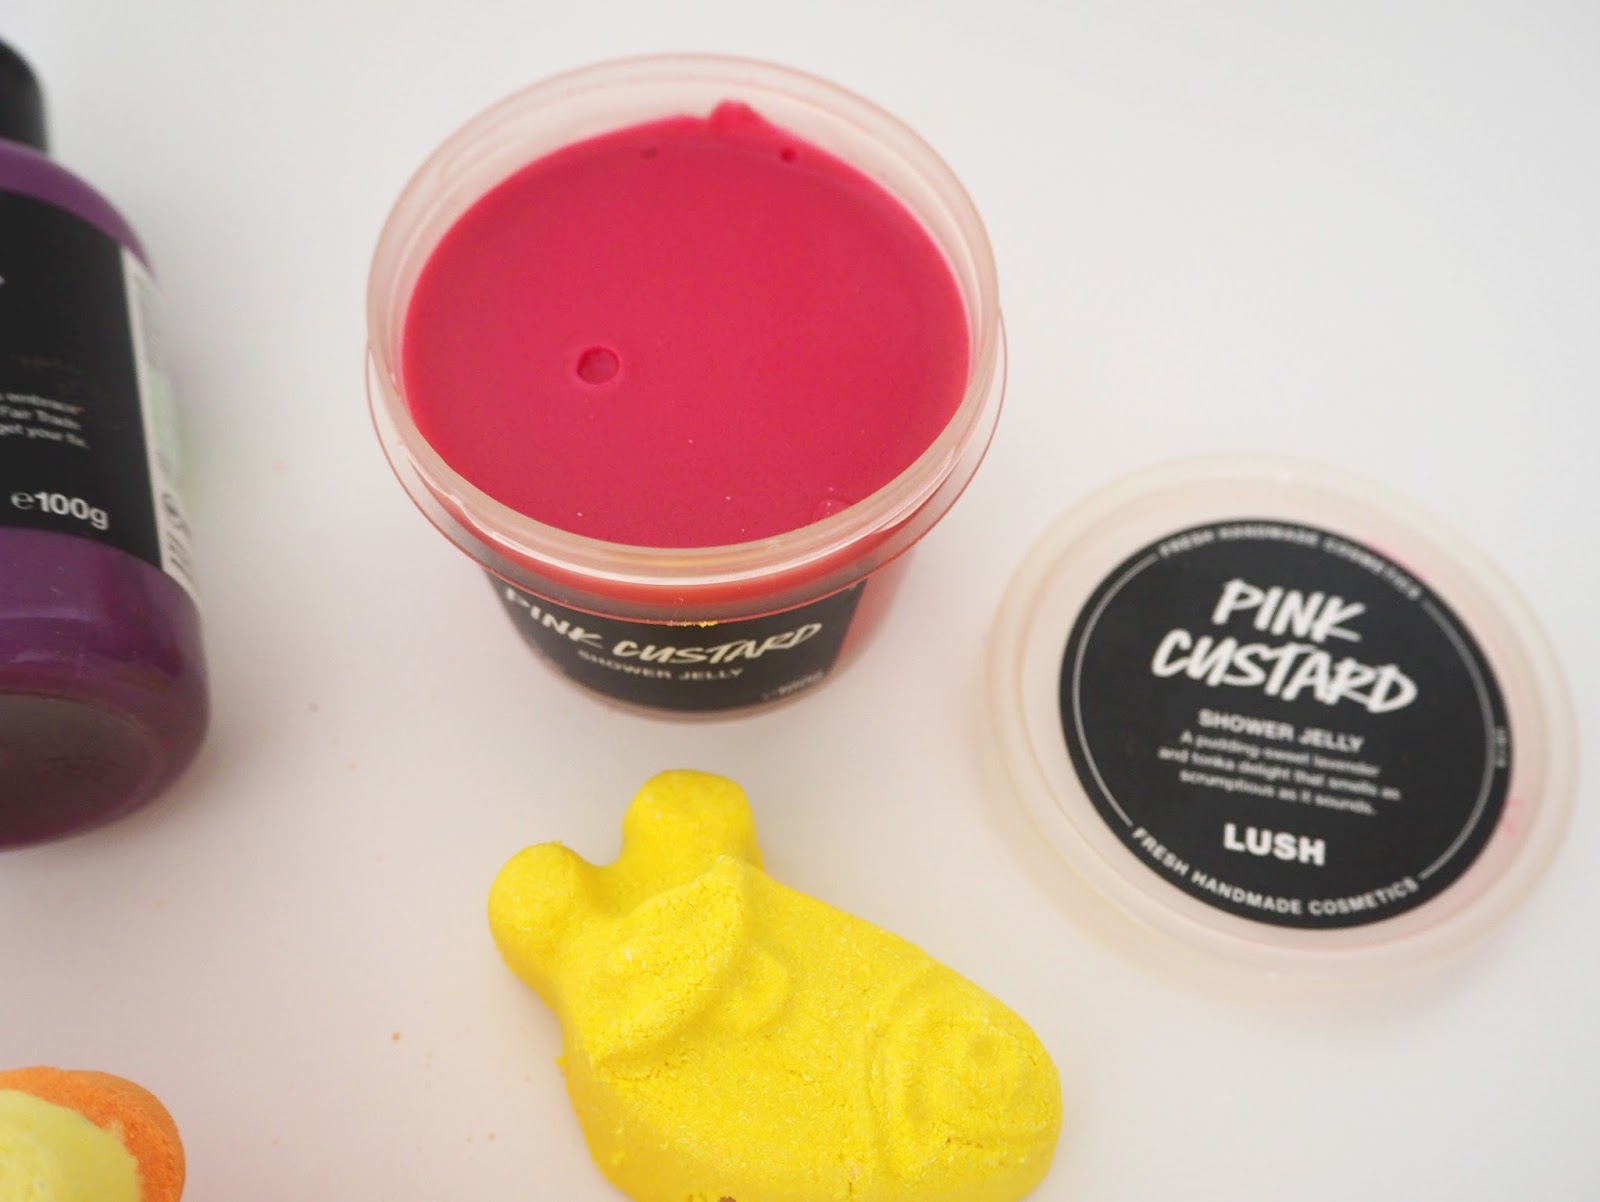 Lush Mother's Day Collection 2017,  Katie Kirk Loves, Lush Cosmetics UK, Lush 2017, Beauty Blogger, UK Blogger, Gifts For Her, Mother's Day Gifts, Gift Ideas, Lush Review, Lush Gifts, Bath & Body Products, Blogger Review